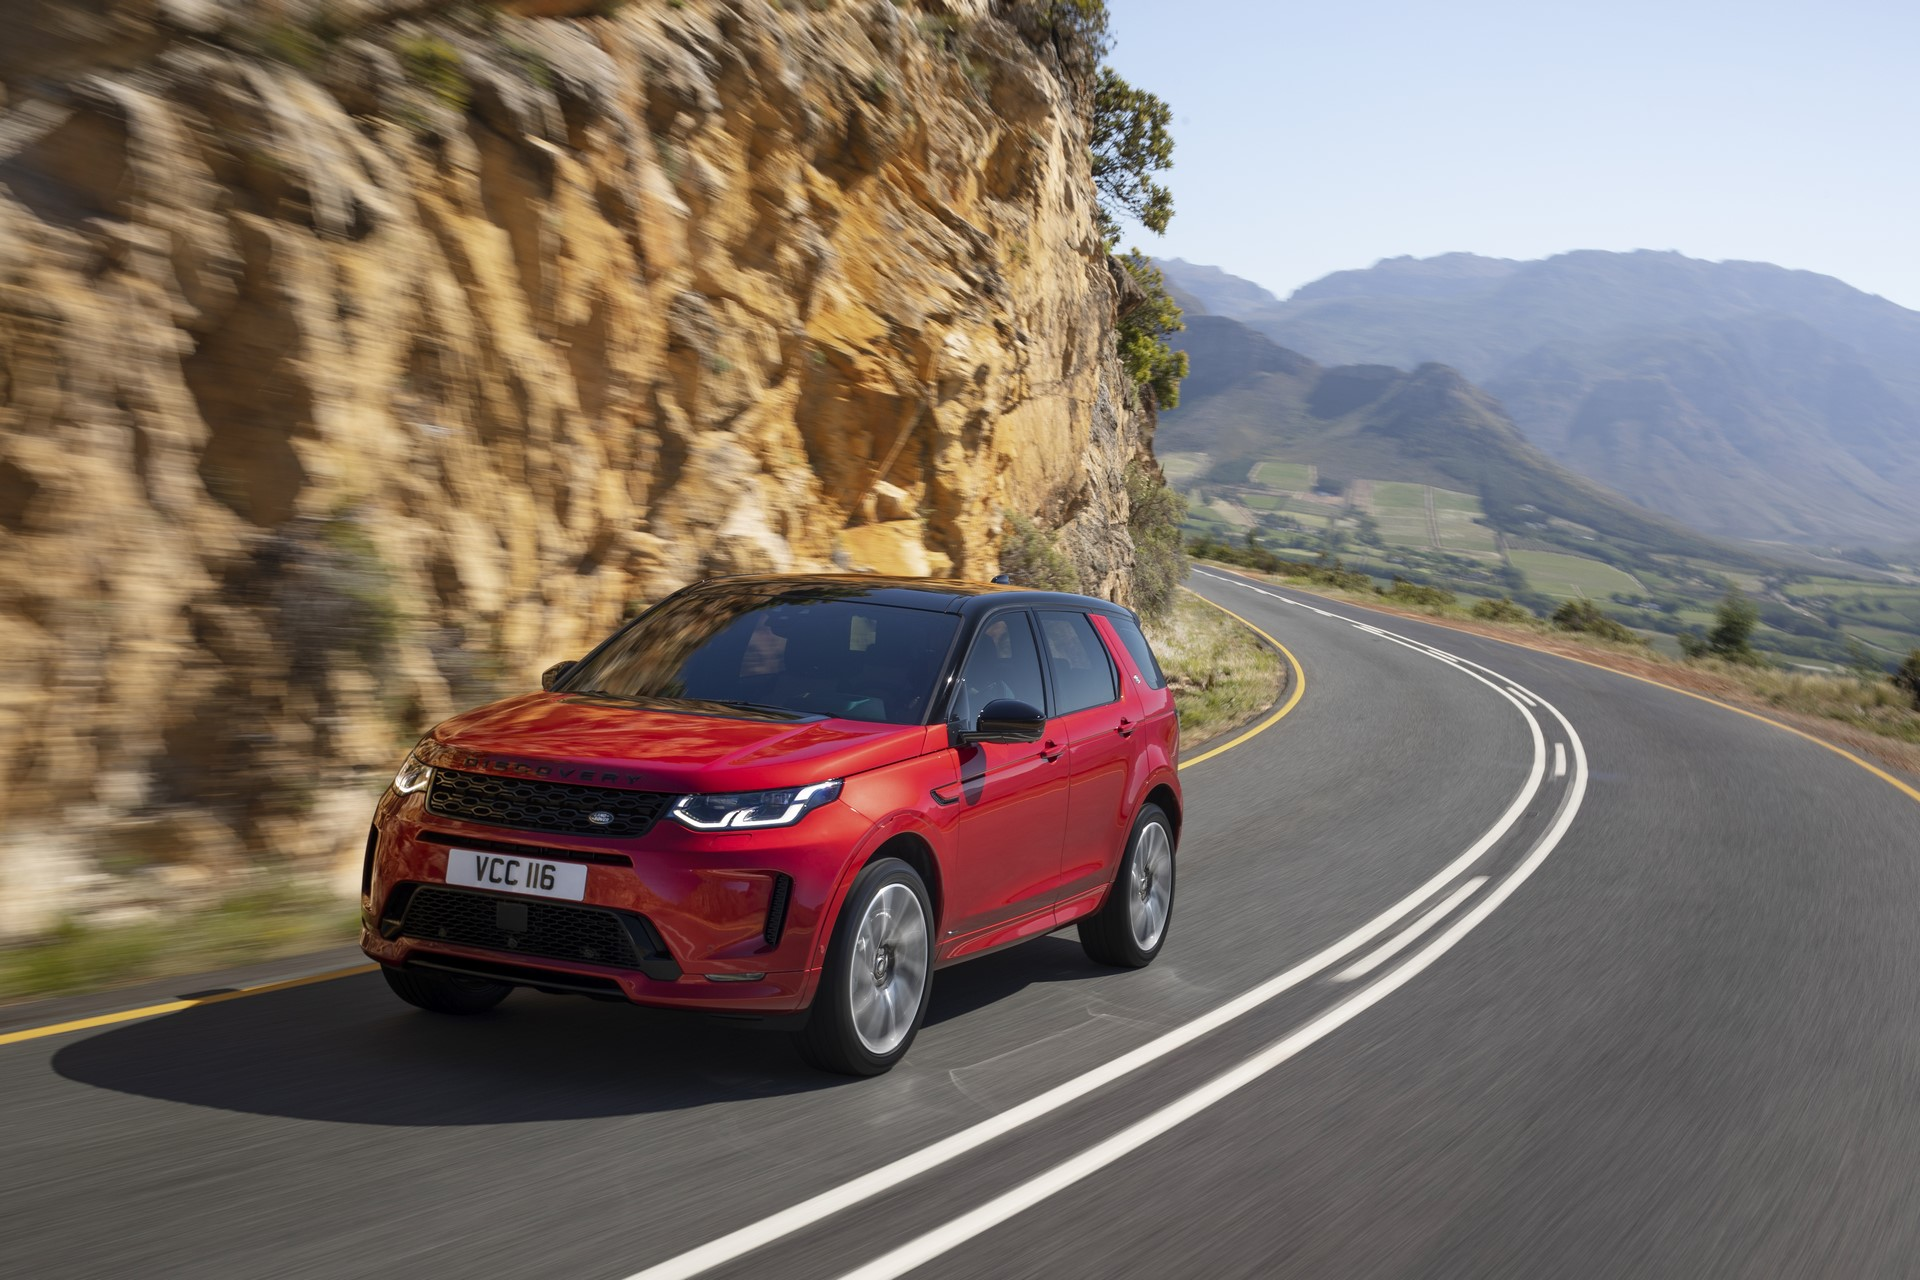 Land-Rover-Discovery-Sport-2020-2